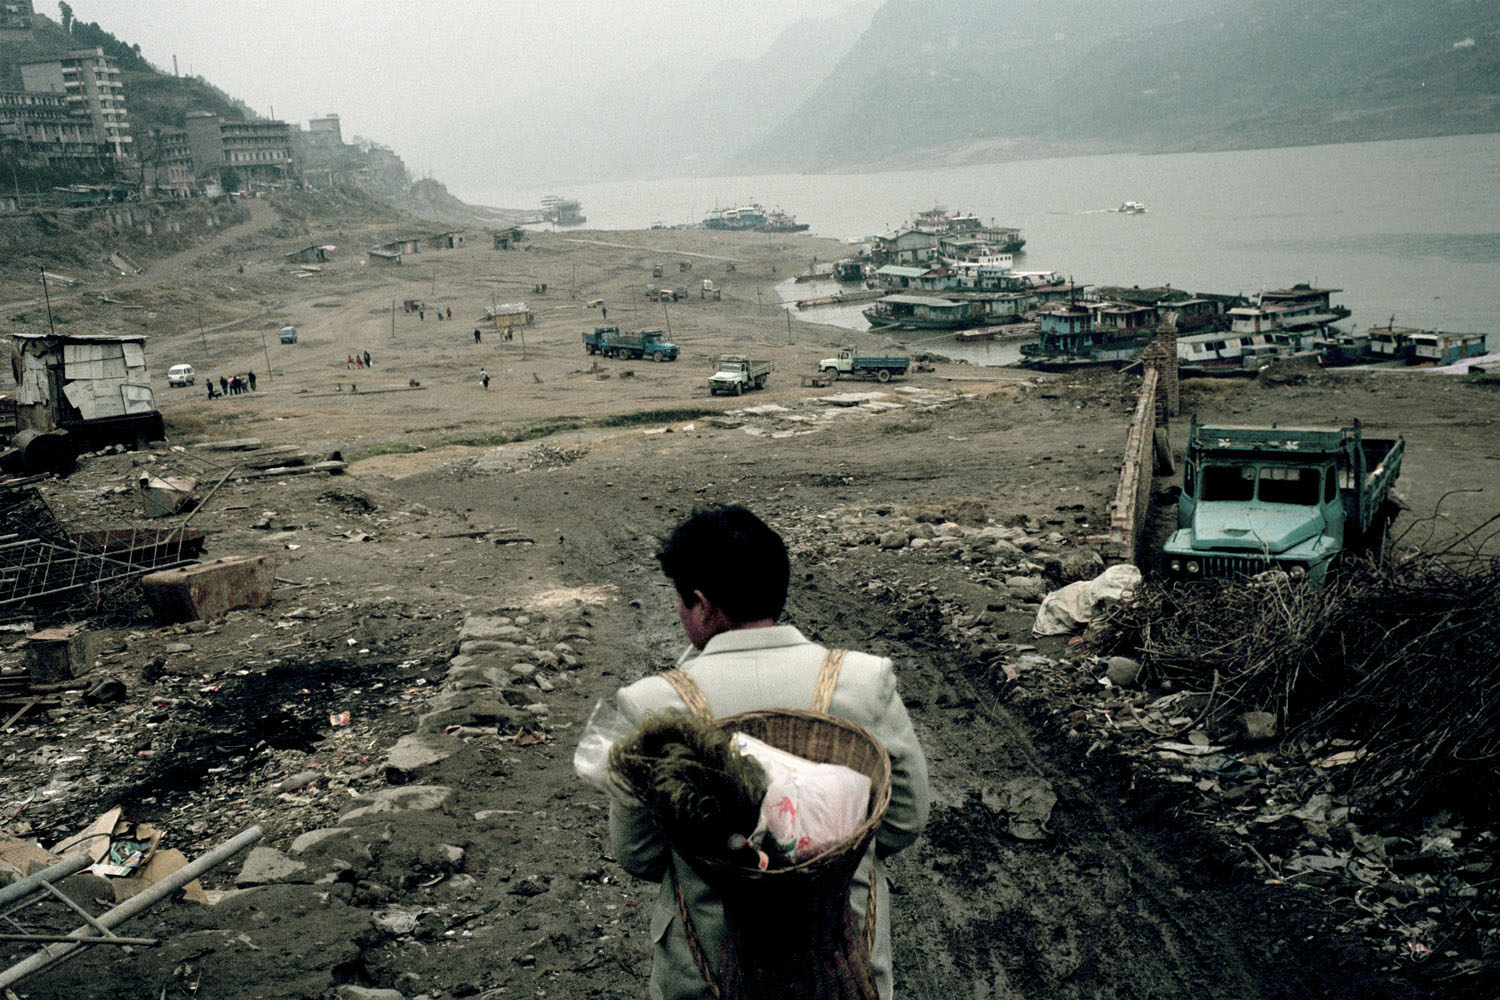 Migrant worker heading to the local docks after the recent demolition of the town. Zigui, China. 2000.